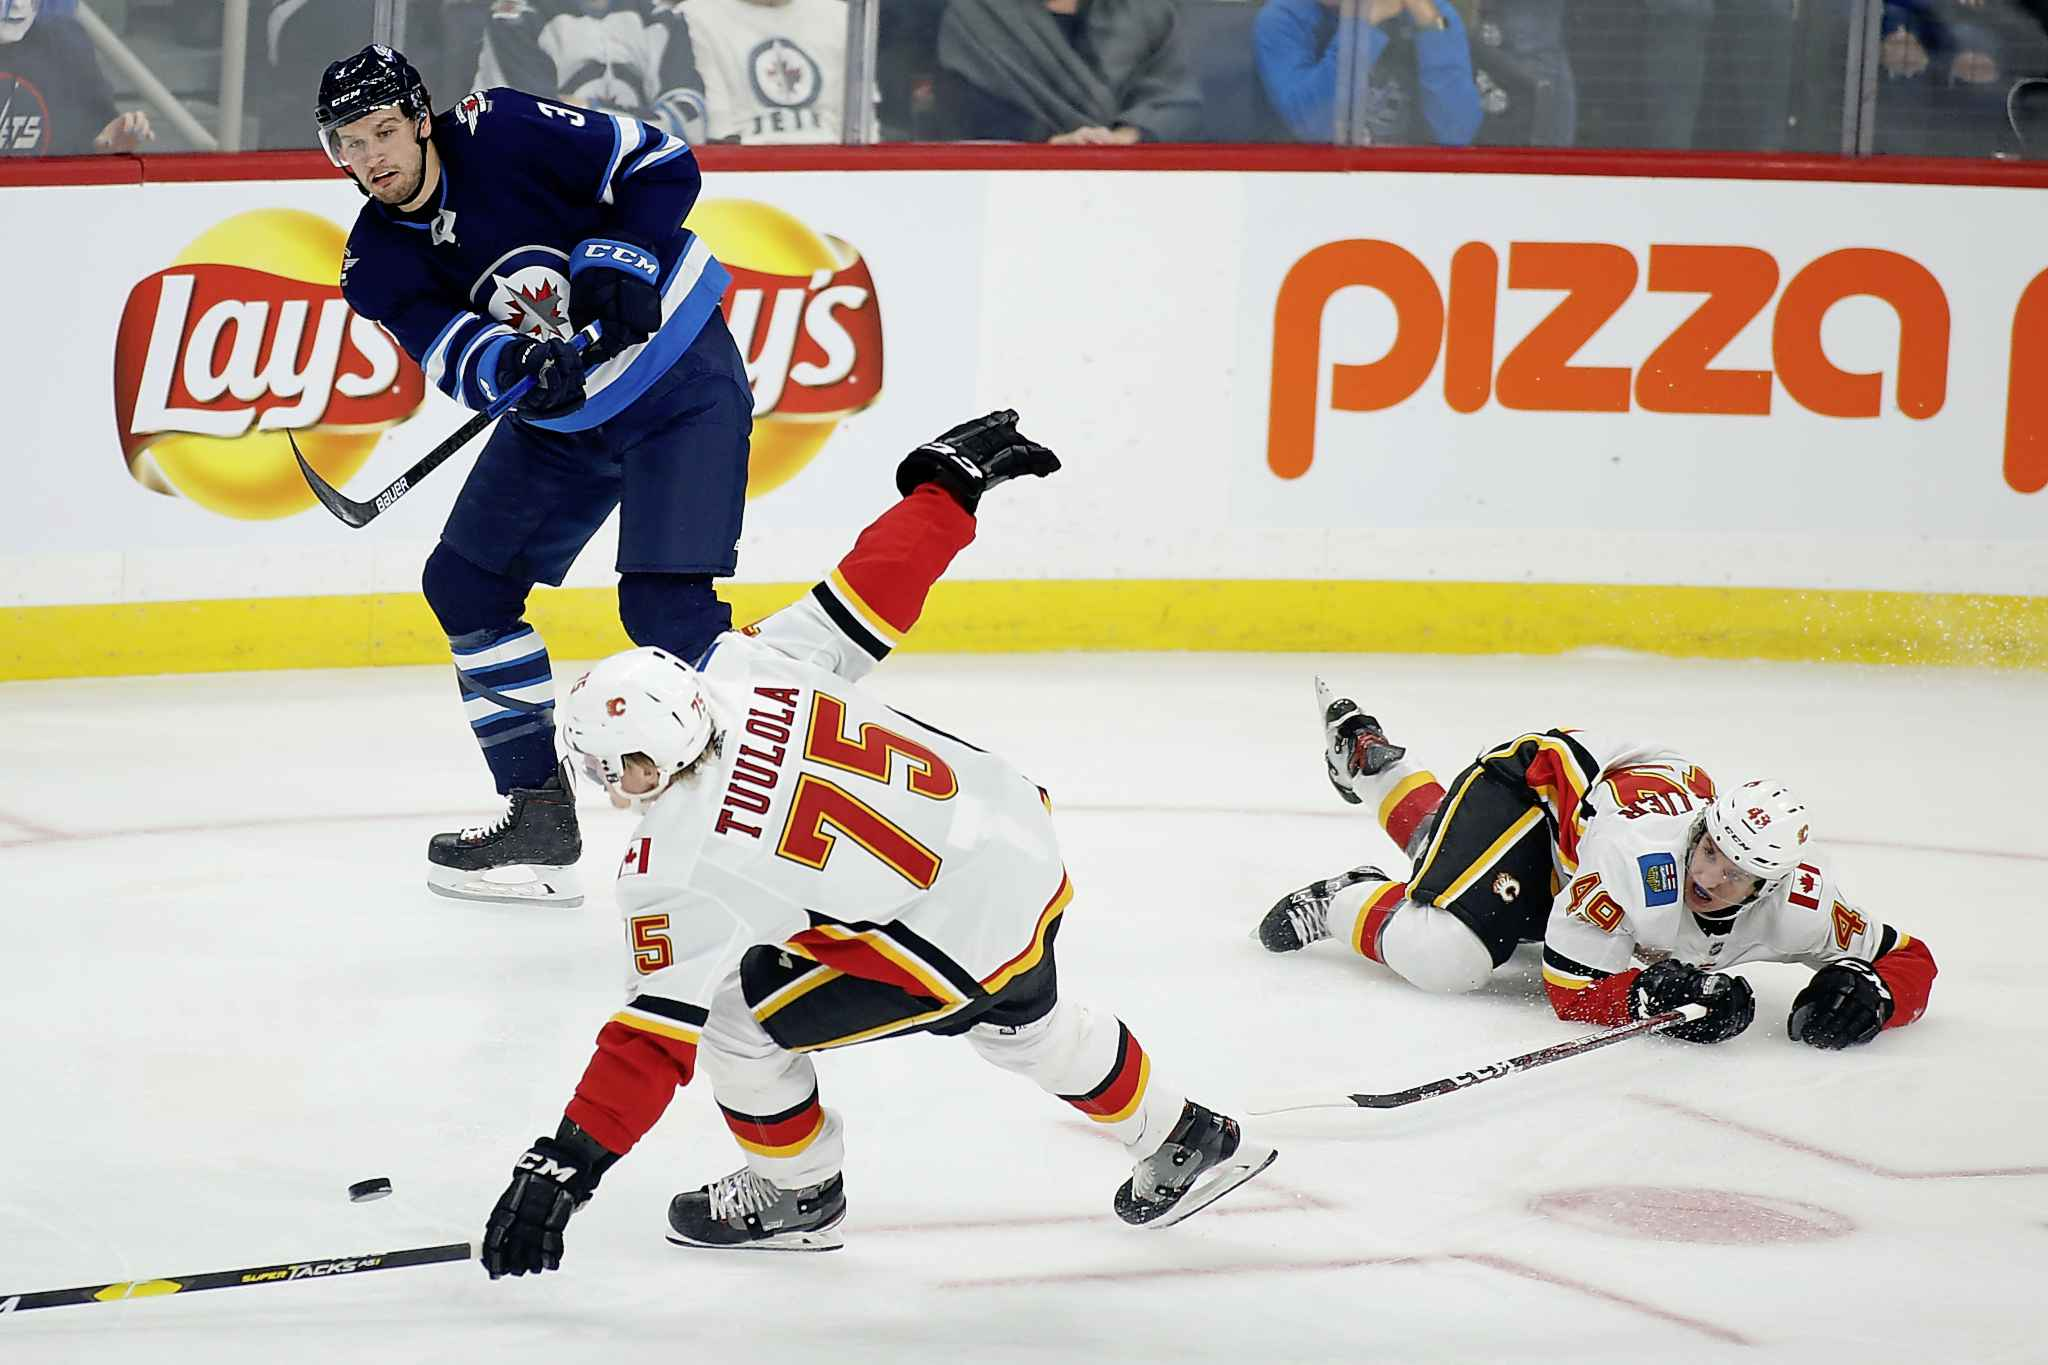 FRED GREENSLADE / THE CANADIAN PRESS</p><p>Winnipeg Jets' Tucker Poolman (3) passes the puck past Calgary Flames' Eetu Tuulola (75) and teammate Jakob Pelletier (49) during first period NHL action in Winnipeg on Sunday, Sept. 22, 2019.</p>